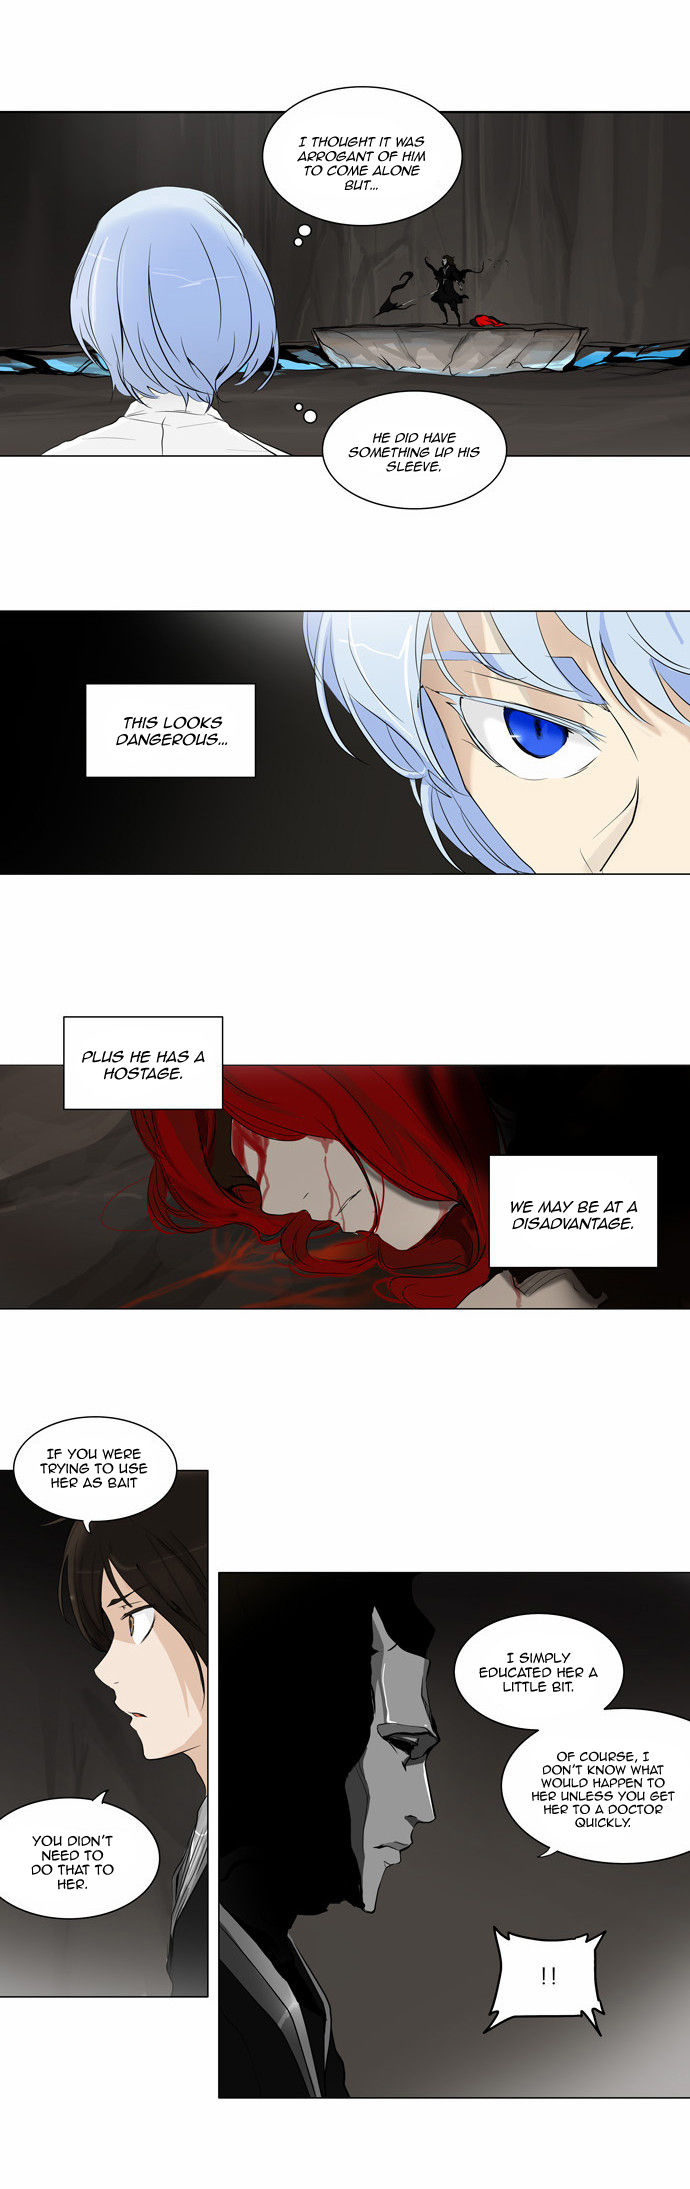 Tower of God 180 Page 2